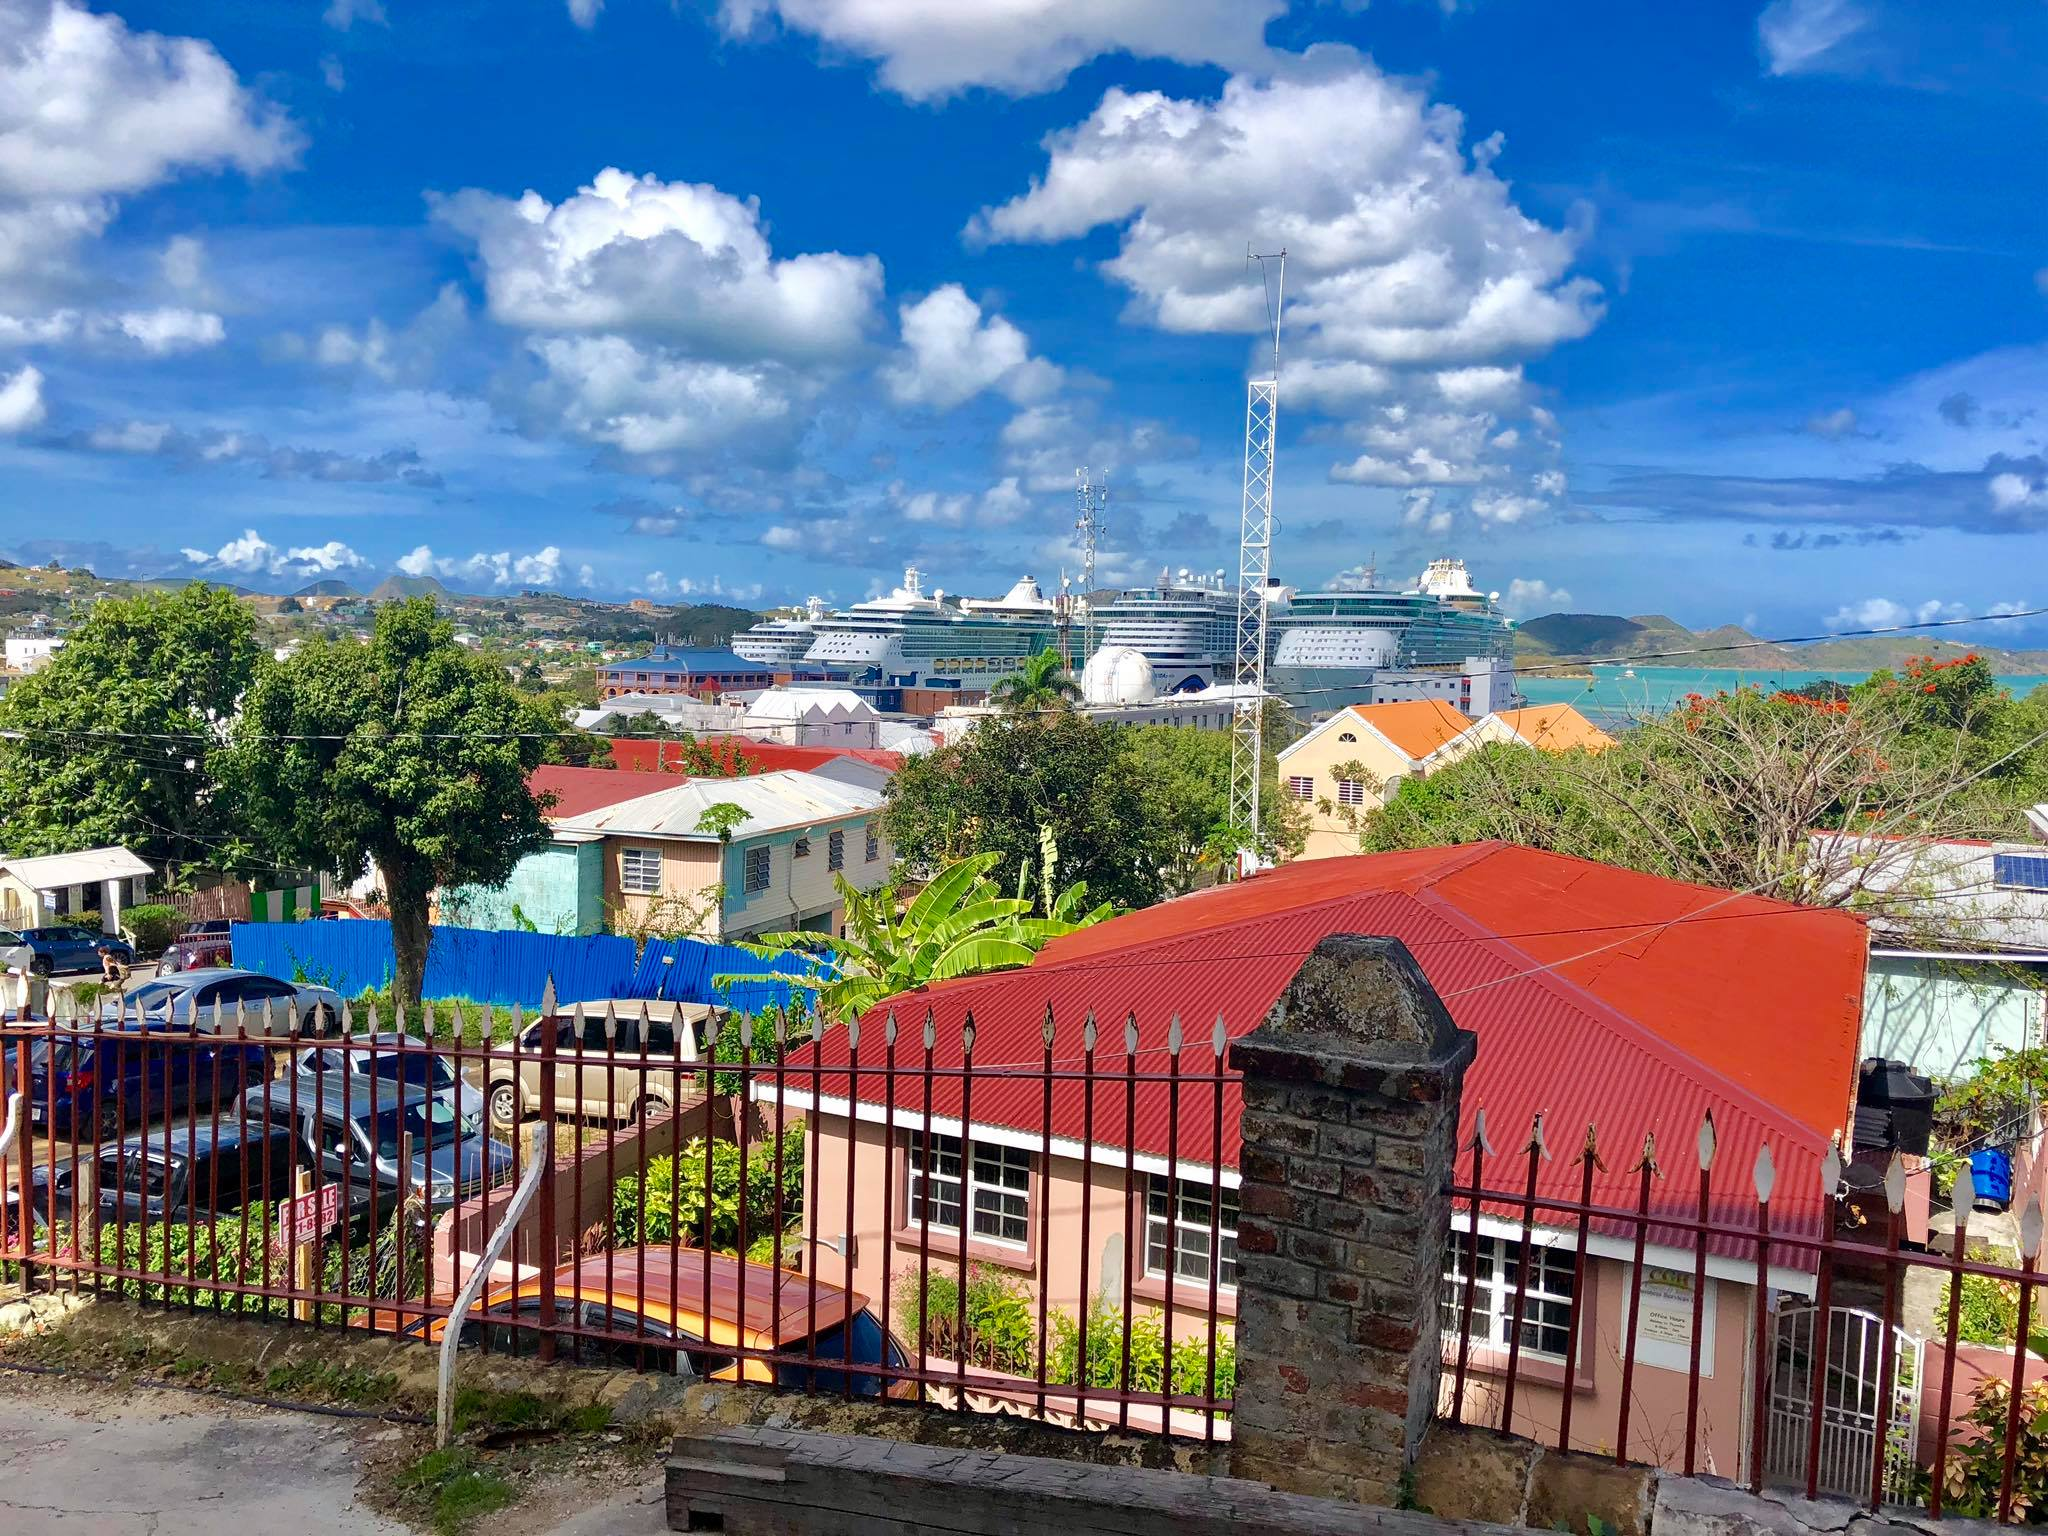 Kach Solo Travels in 2019 Second stop of the cruise is Antigua3.jpg